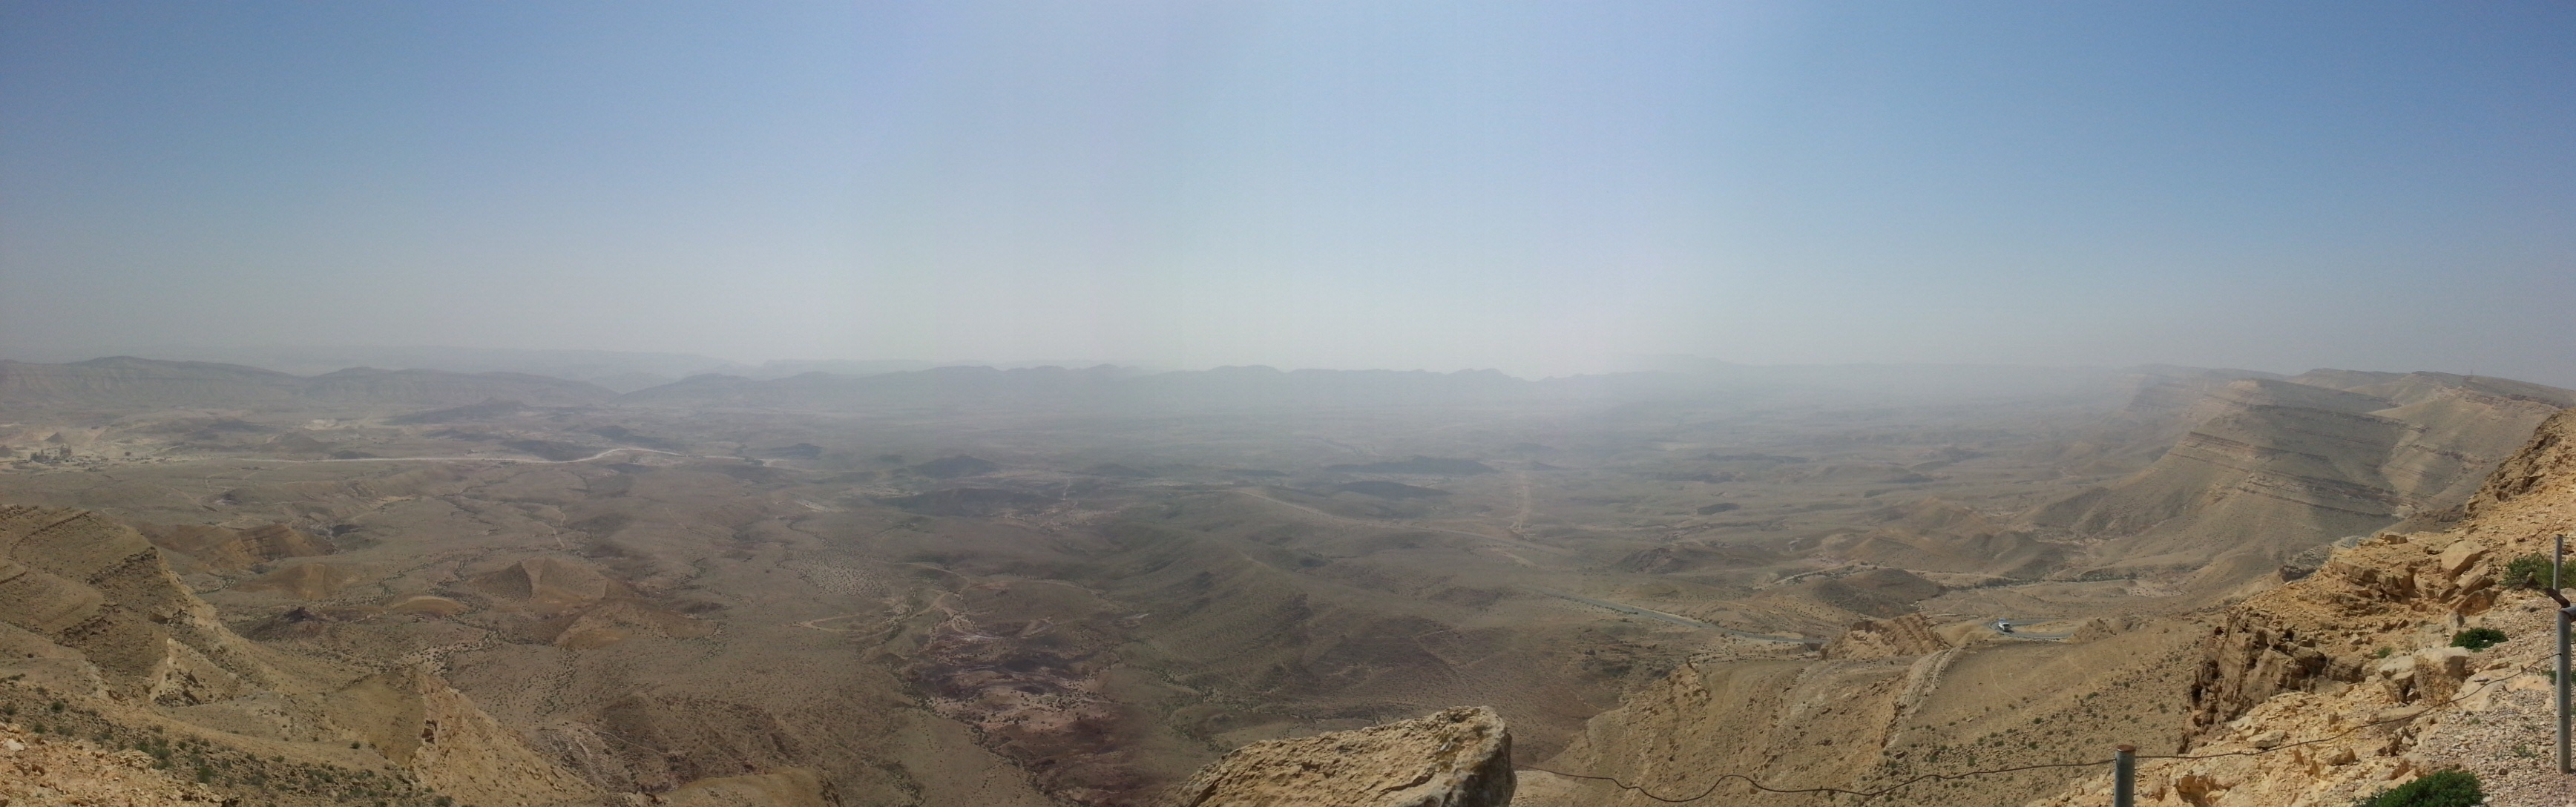 View over the Large Crater (HaMakhtesh HaGadol) from Mt Avnon